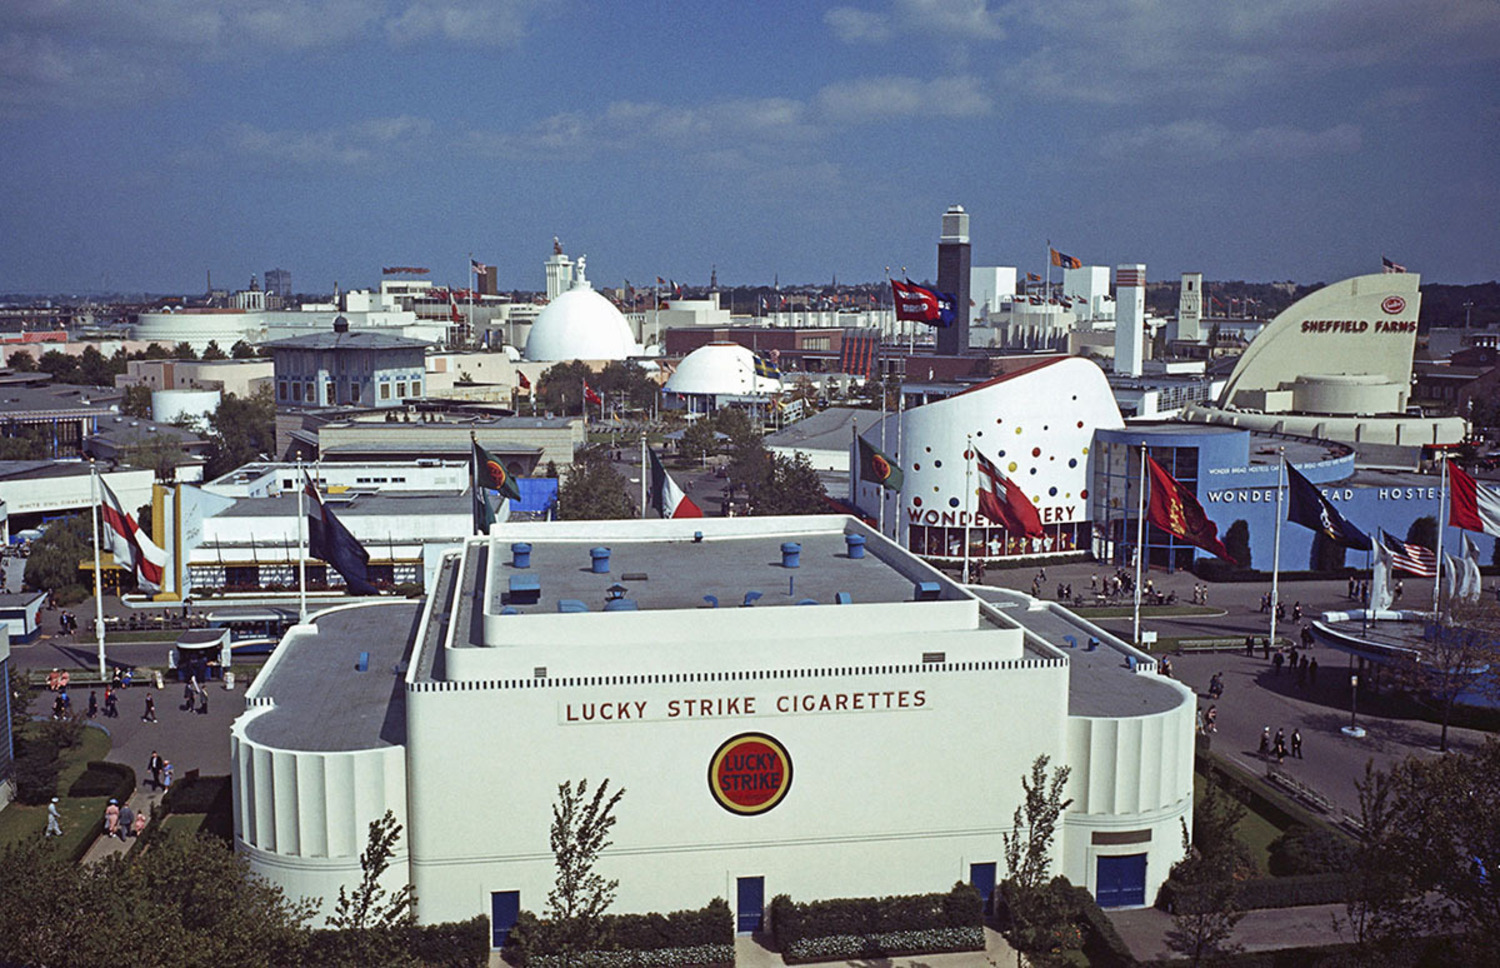 The Lucky Strike Cigarettes, Wonder Bread Bakery, and Sheffield Farms buildings stand on part of the grounds of the 1939 New York World's Fair.